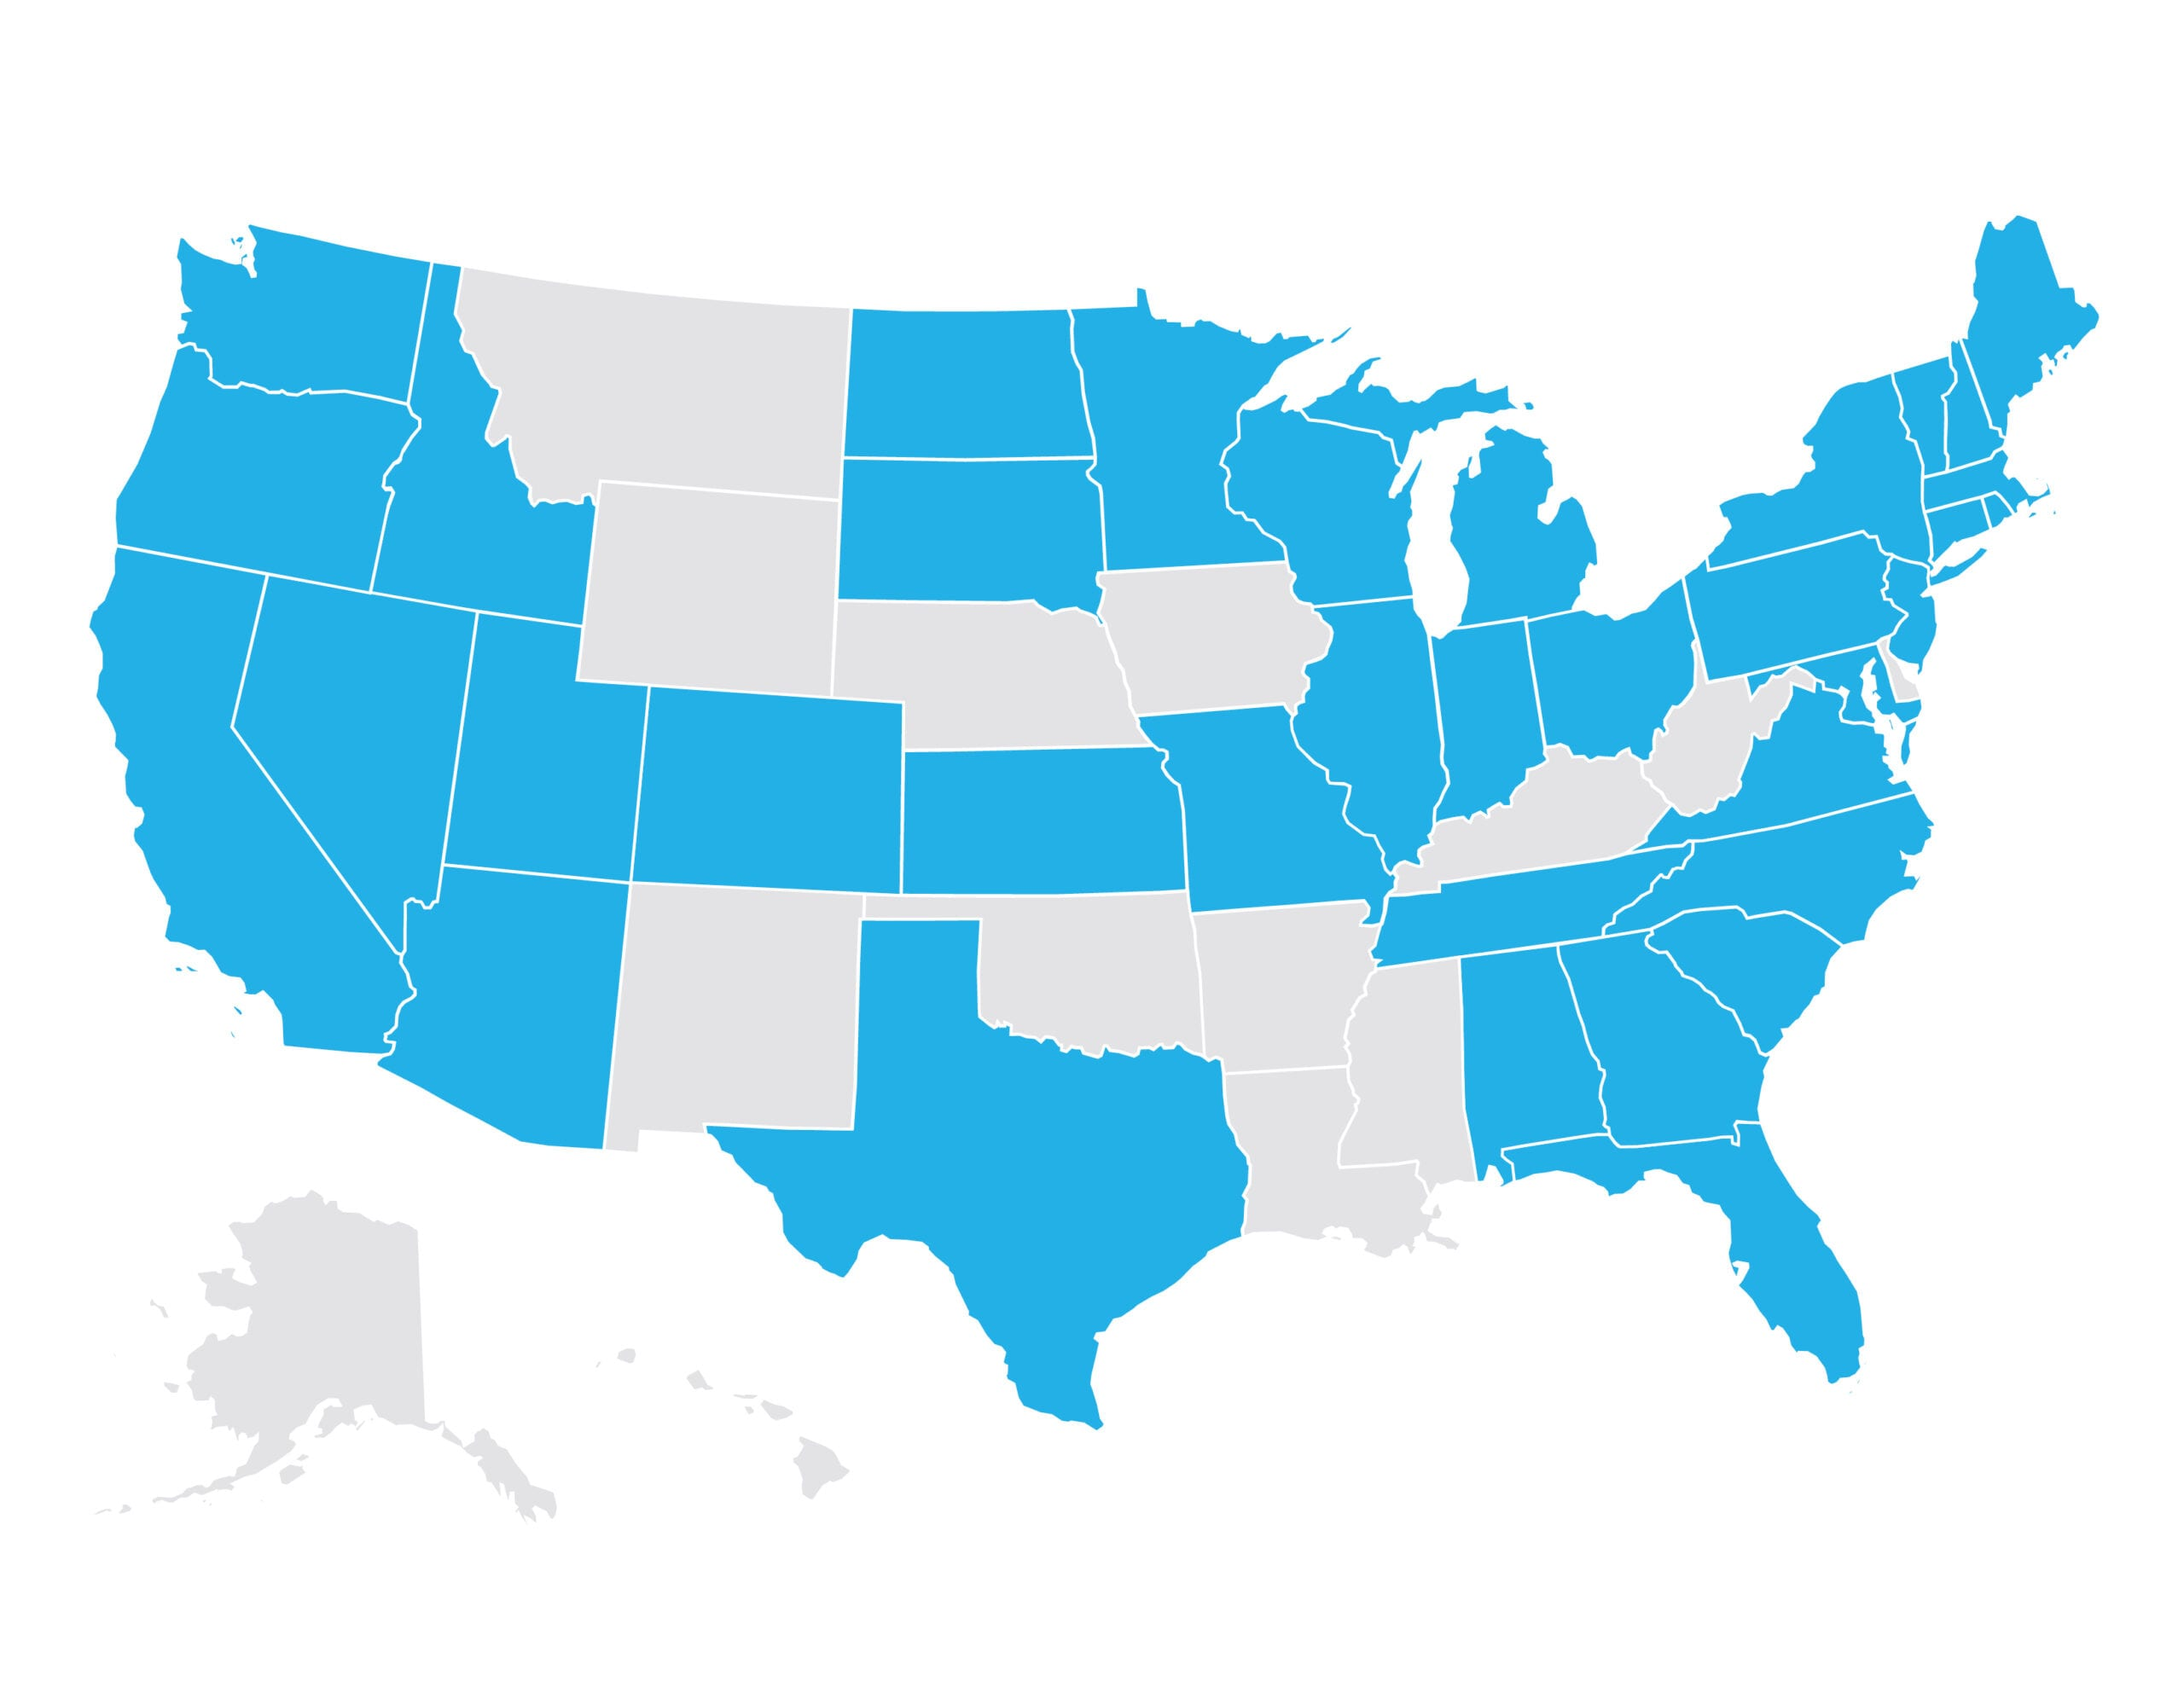 Map of US with Sievewright & Associates Client States marked